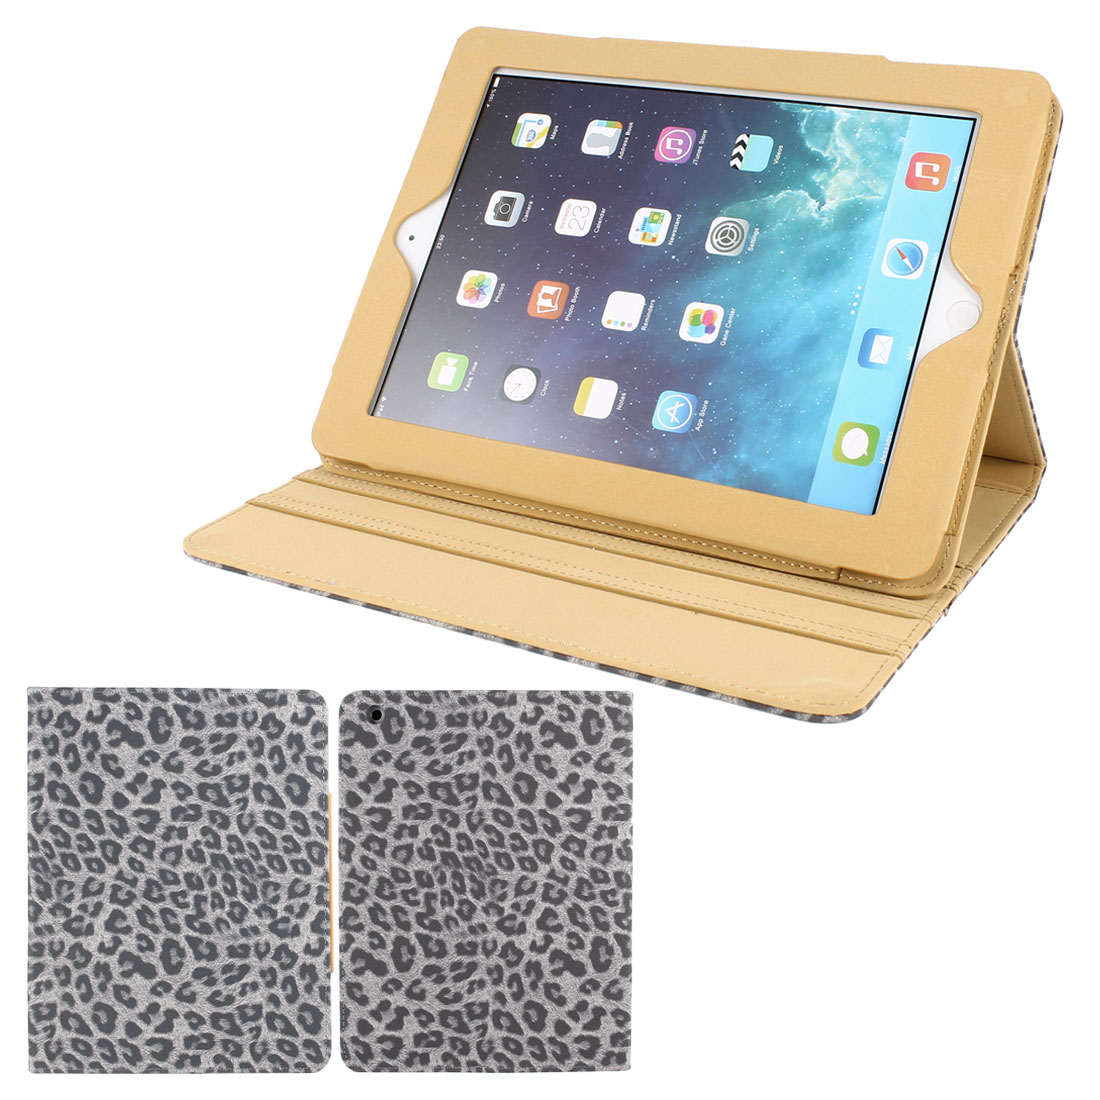 Gray Textured Leopard Print PU Leather Folio Stand Case Cover Skin for iPad 2 3 4